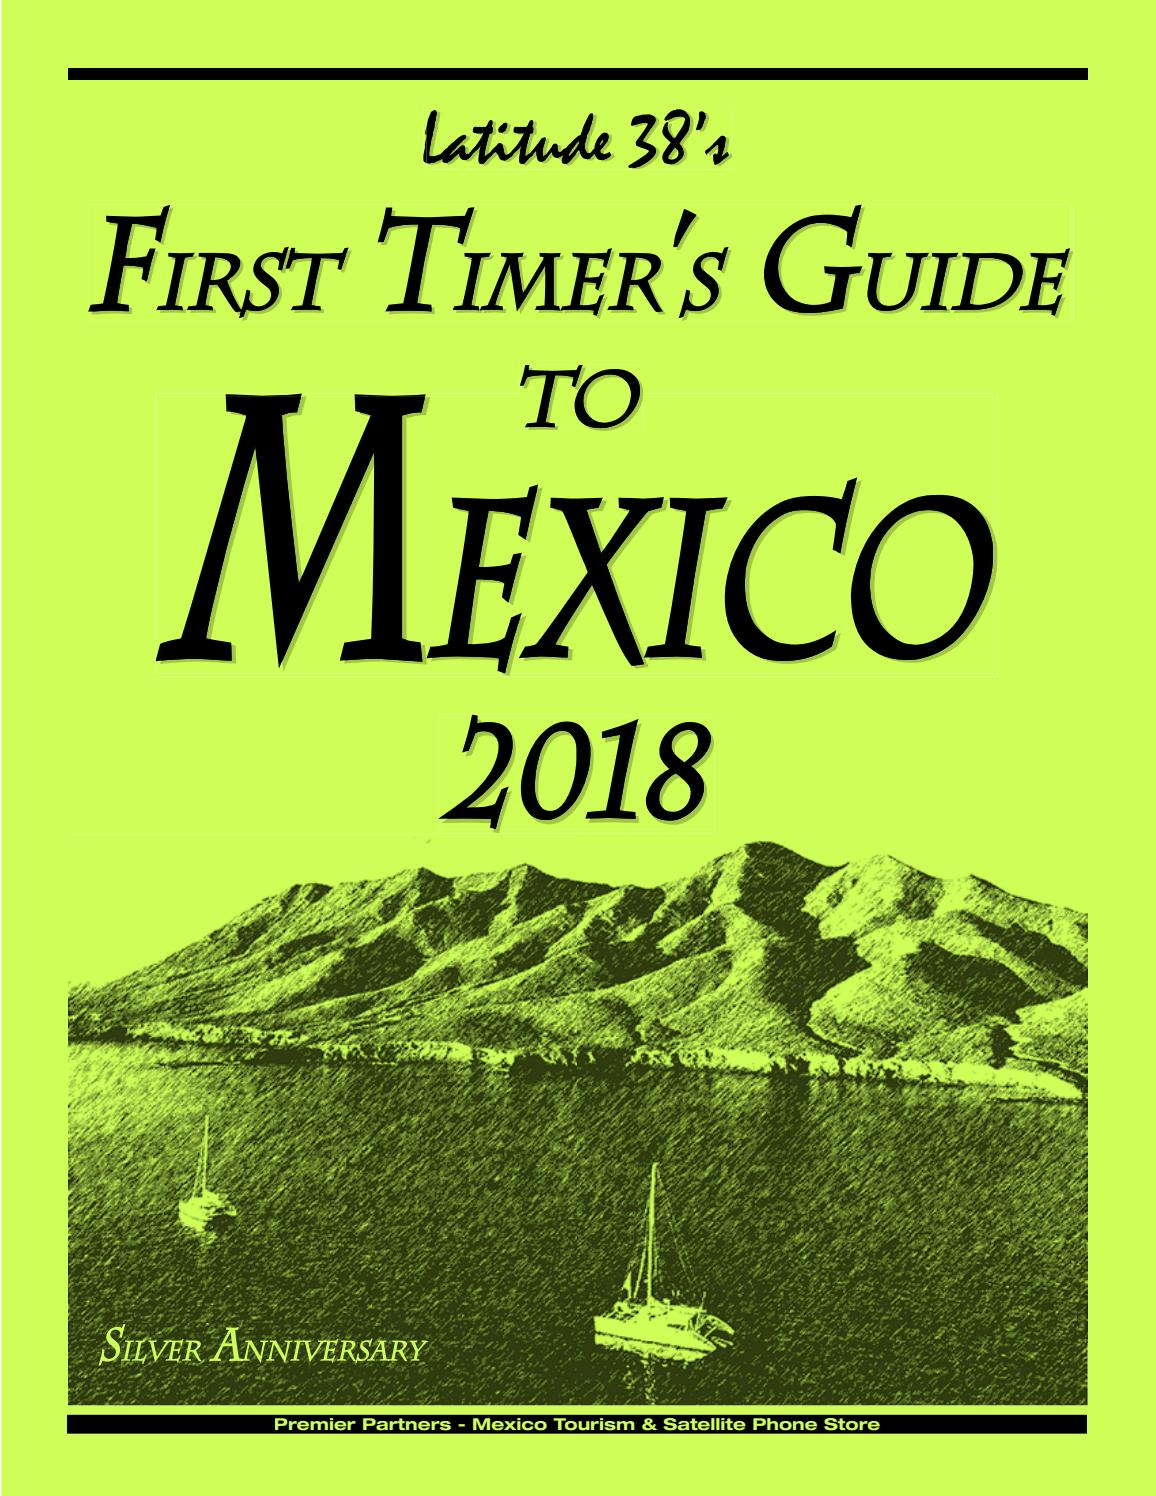 First Timer's Guide to Mexico 2018